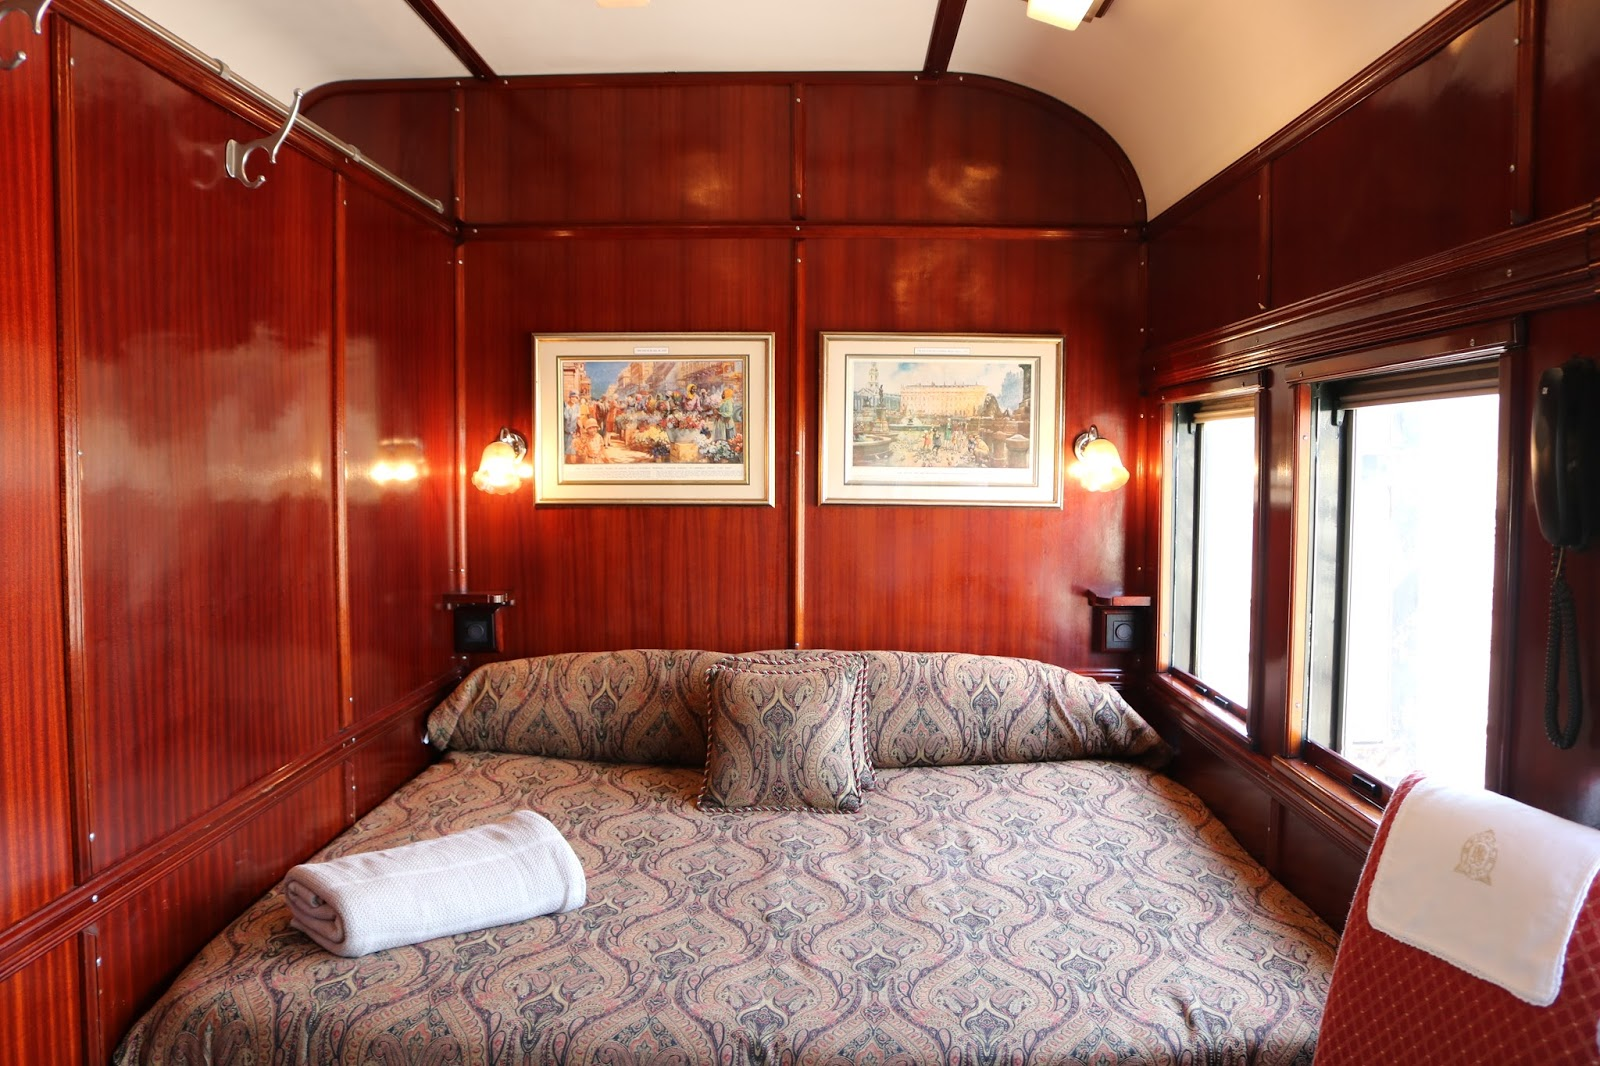 Rovos Rail, Pretoria to Durban bed in the carriage